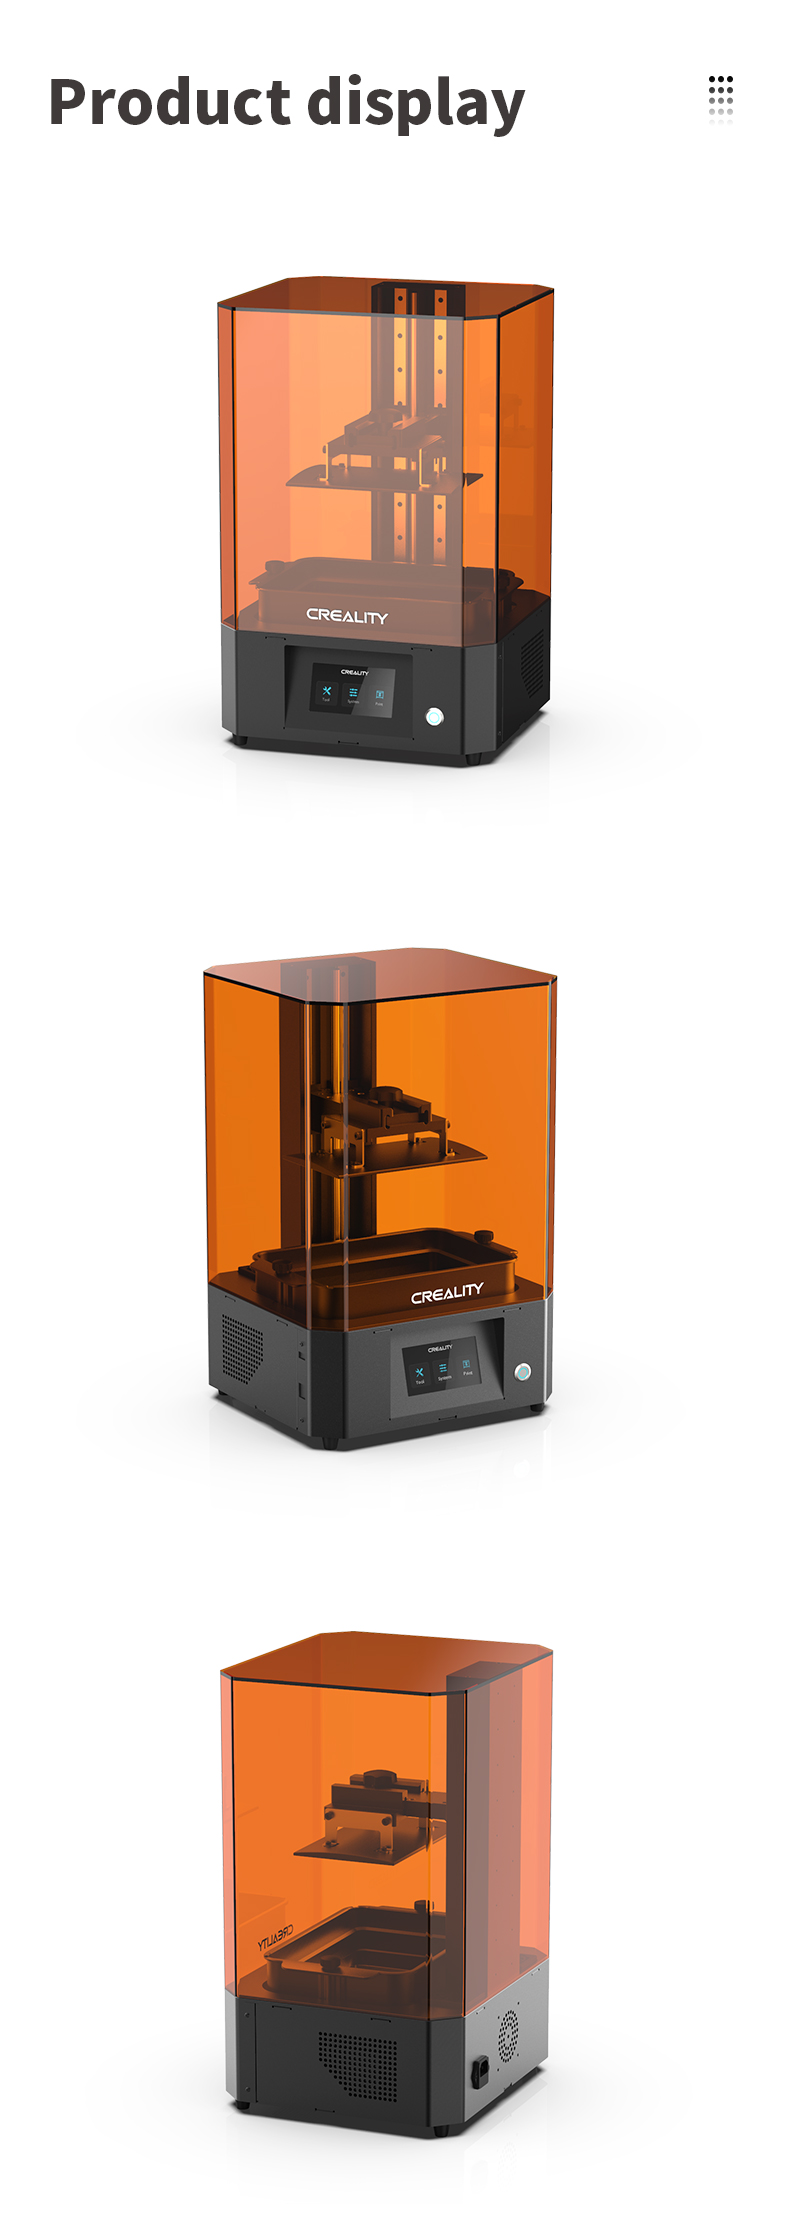 Creality LD-006 Resin 3D Printer